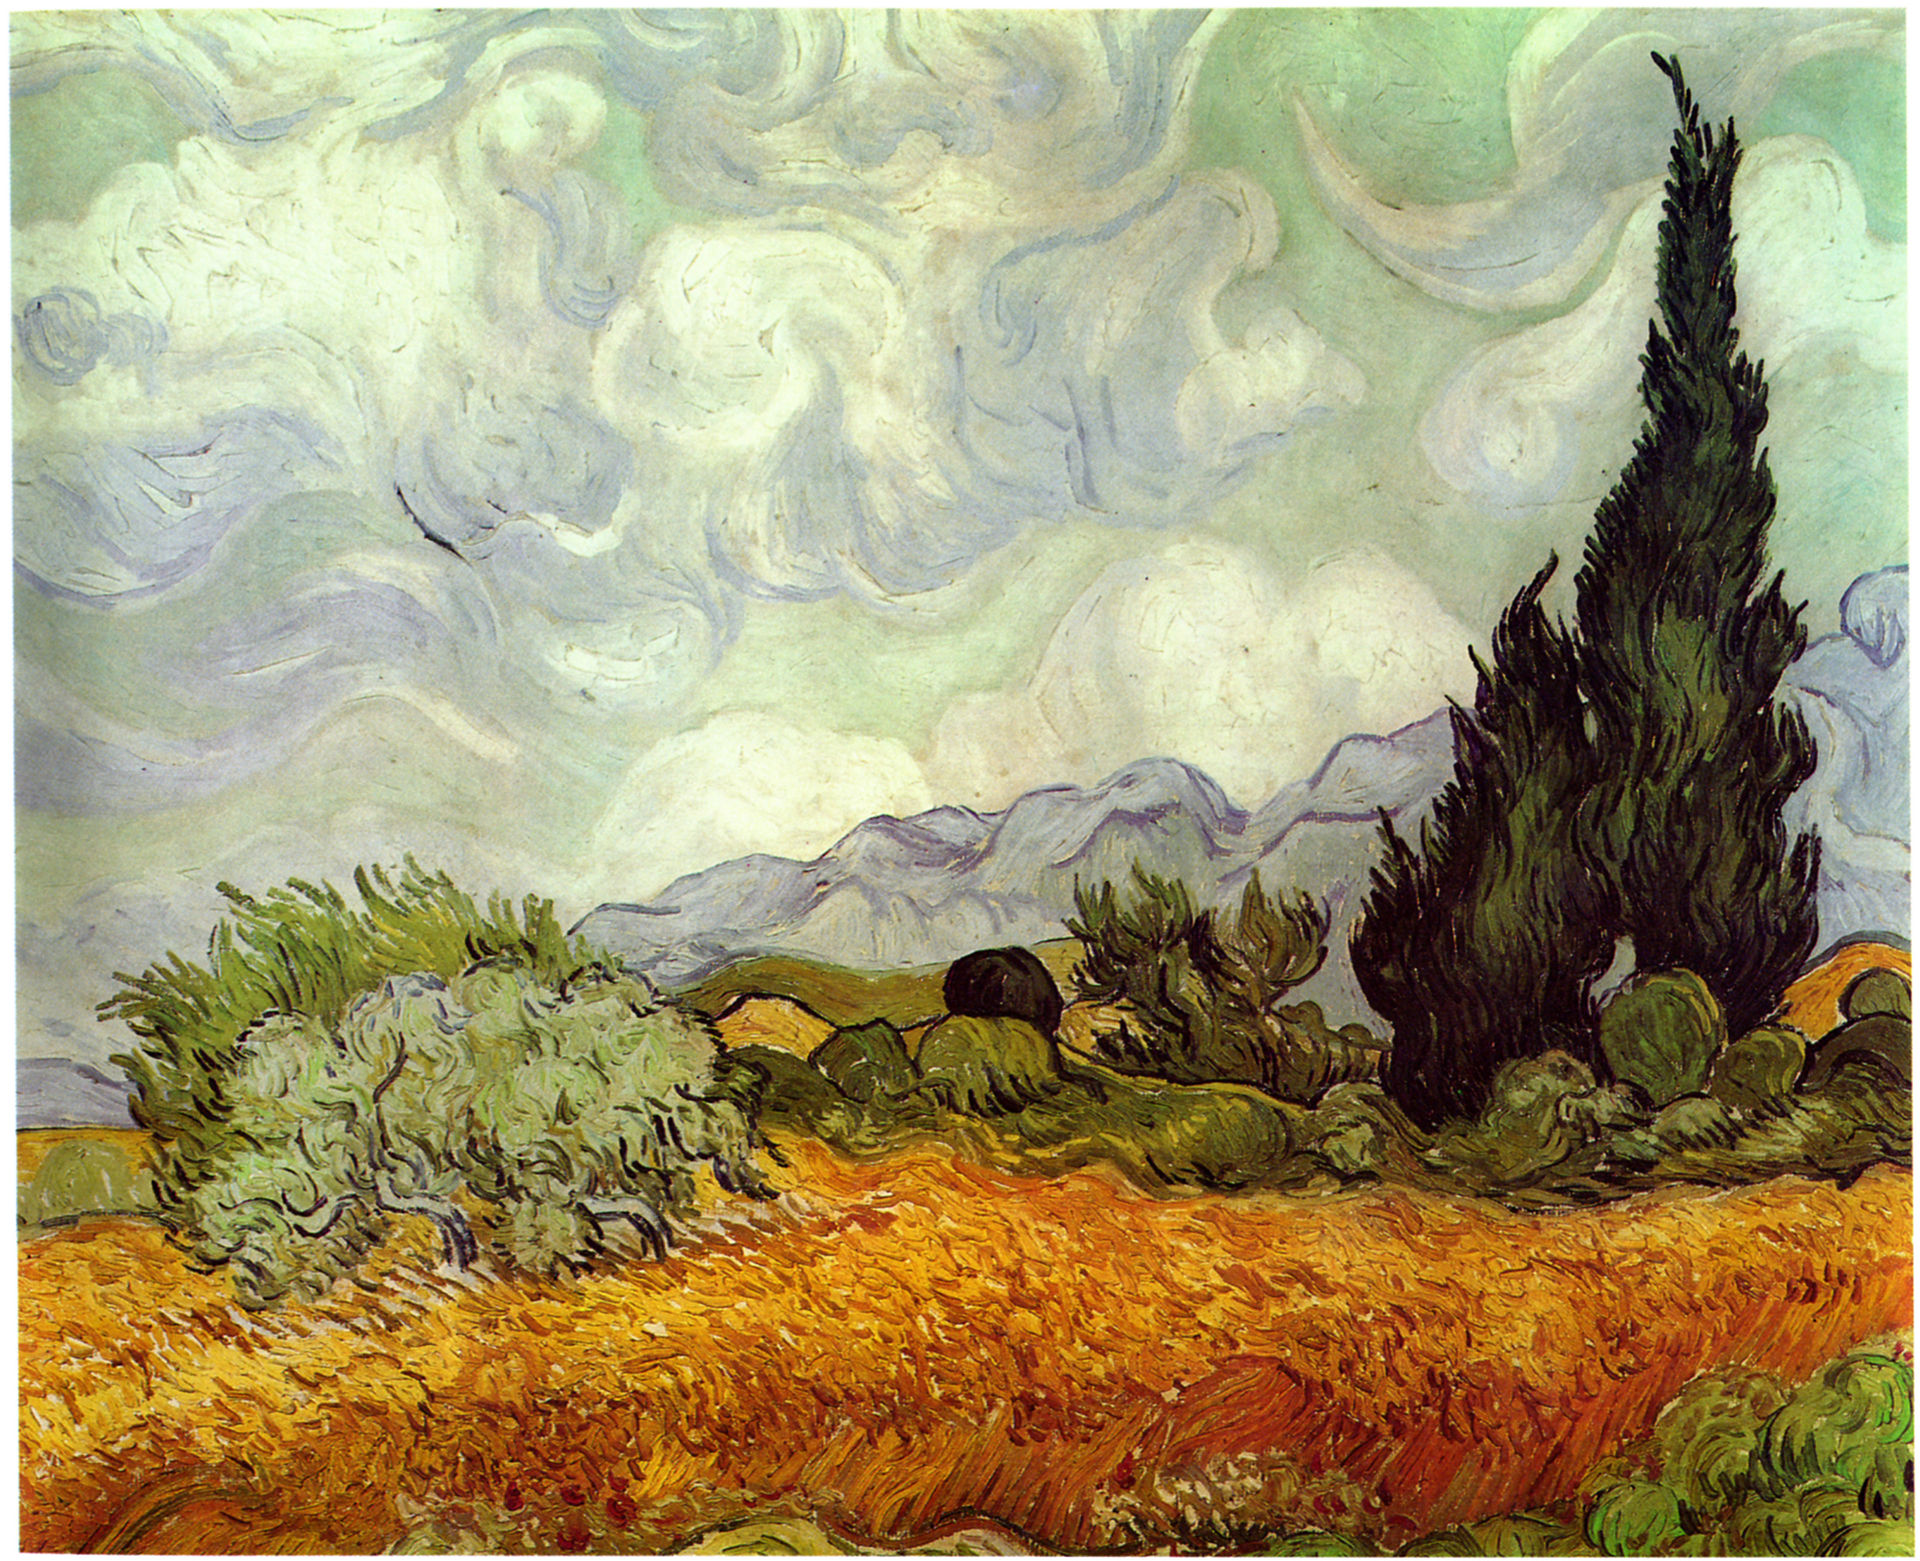 Vincent van Gogh, Wheat Field with Cypresses, 1889, National Gallery, London.